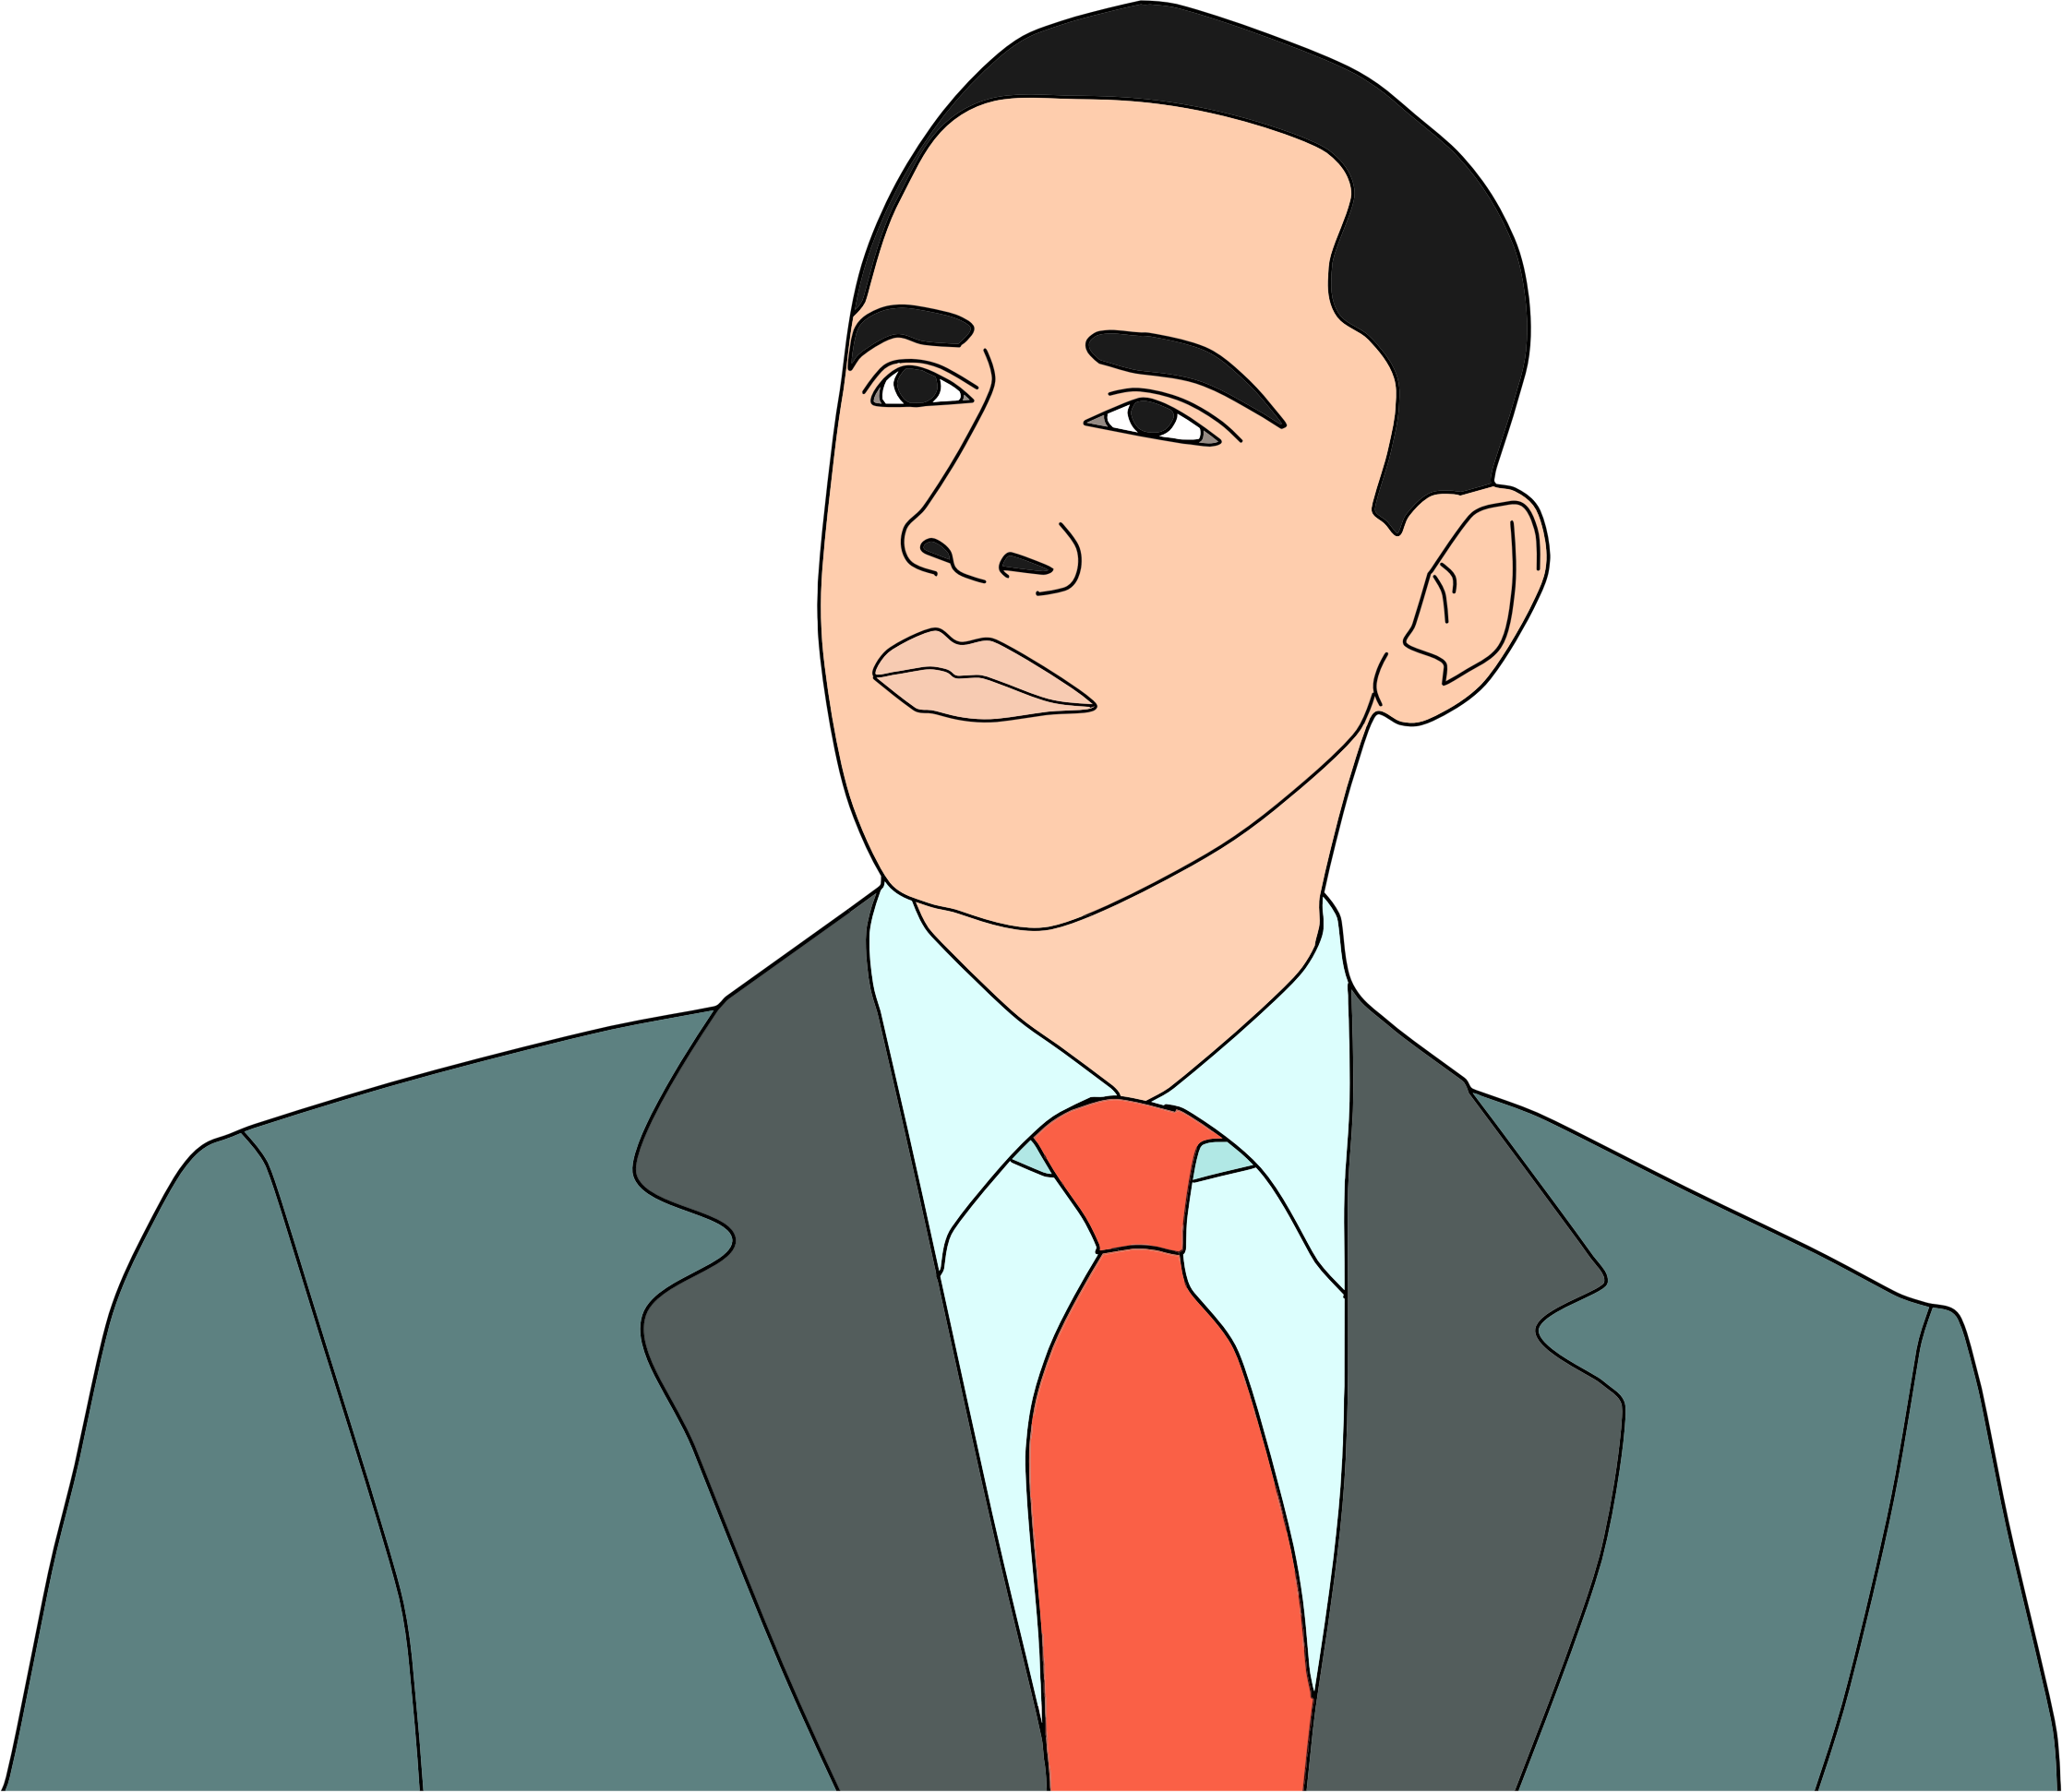 Barack Obama Portrait Vector Clipart.